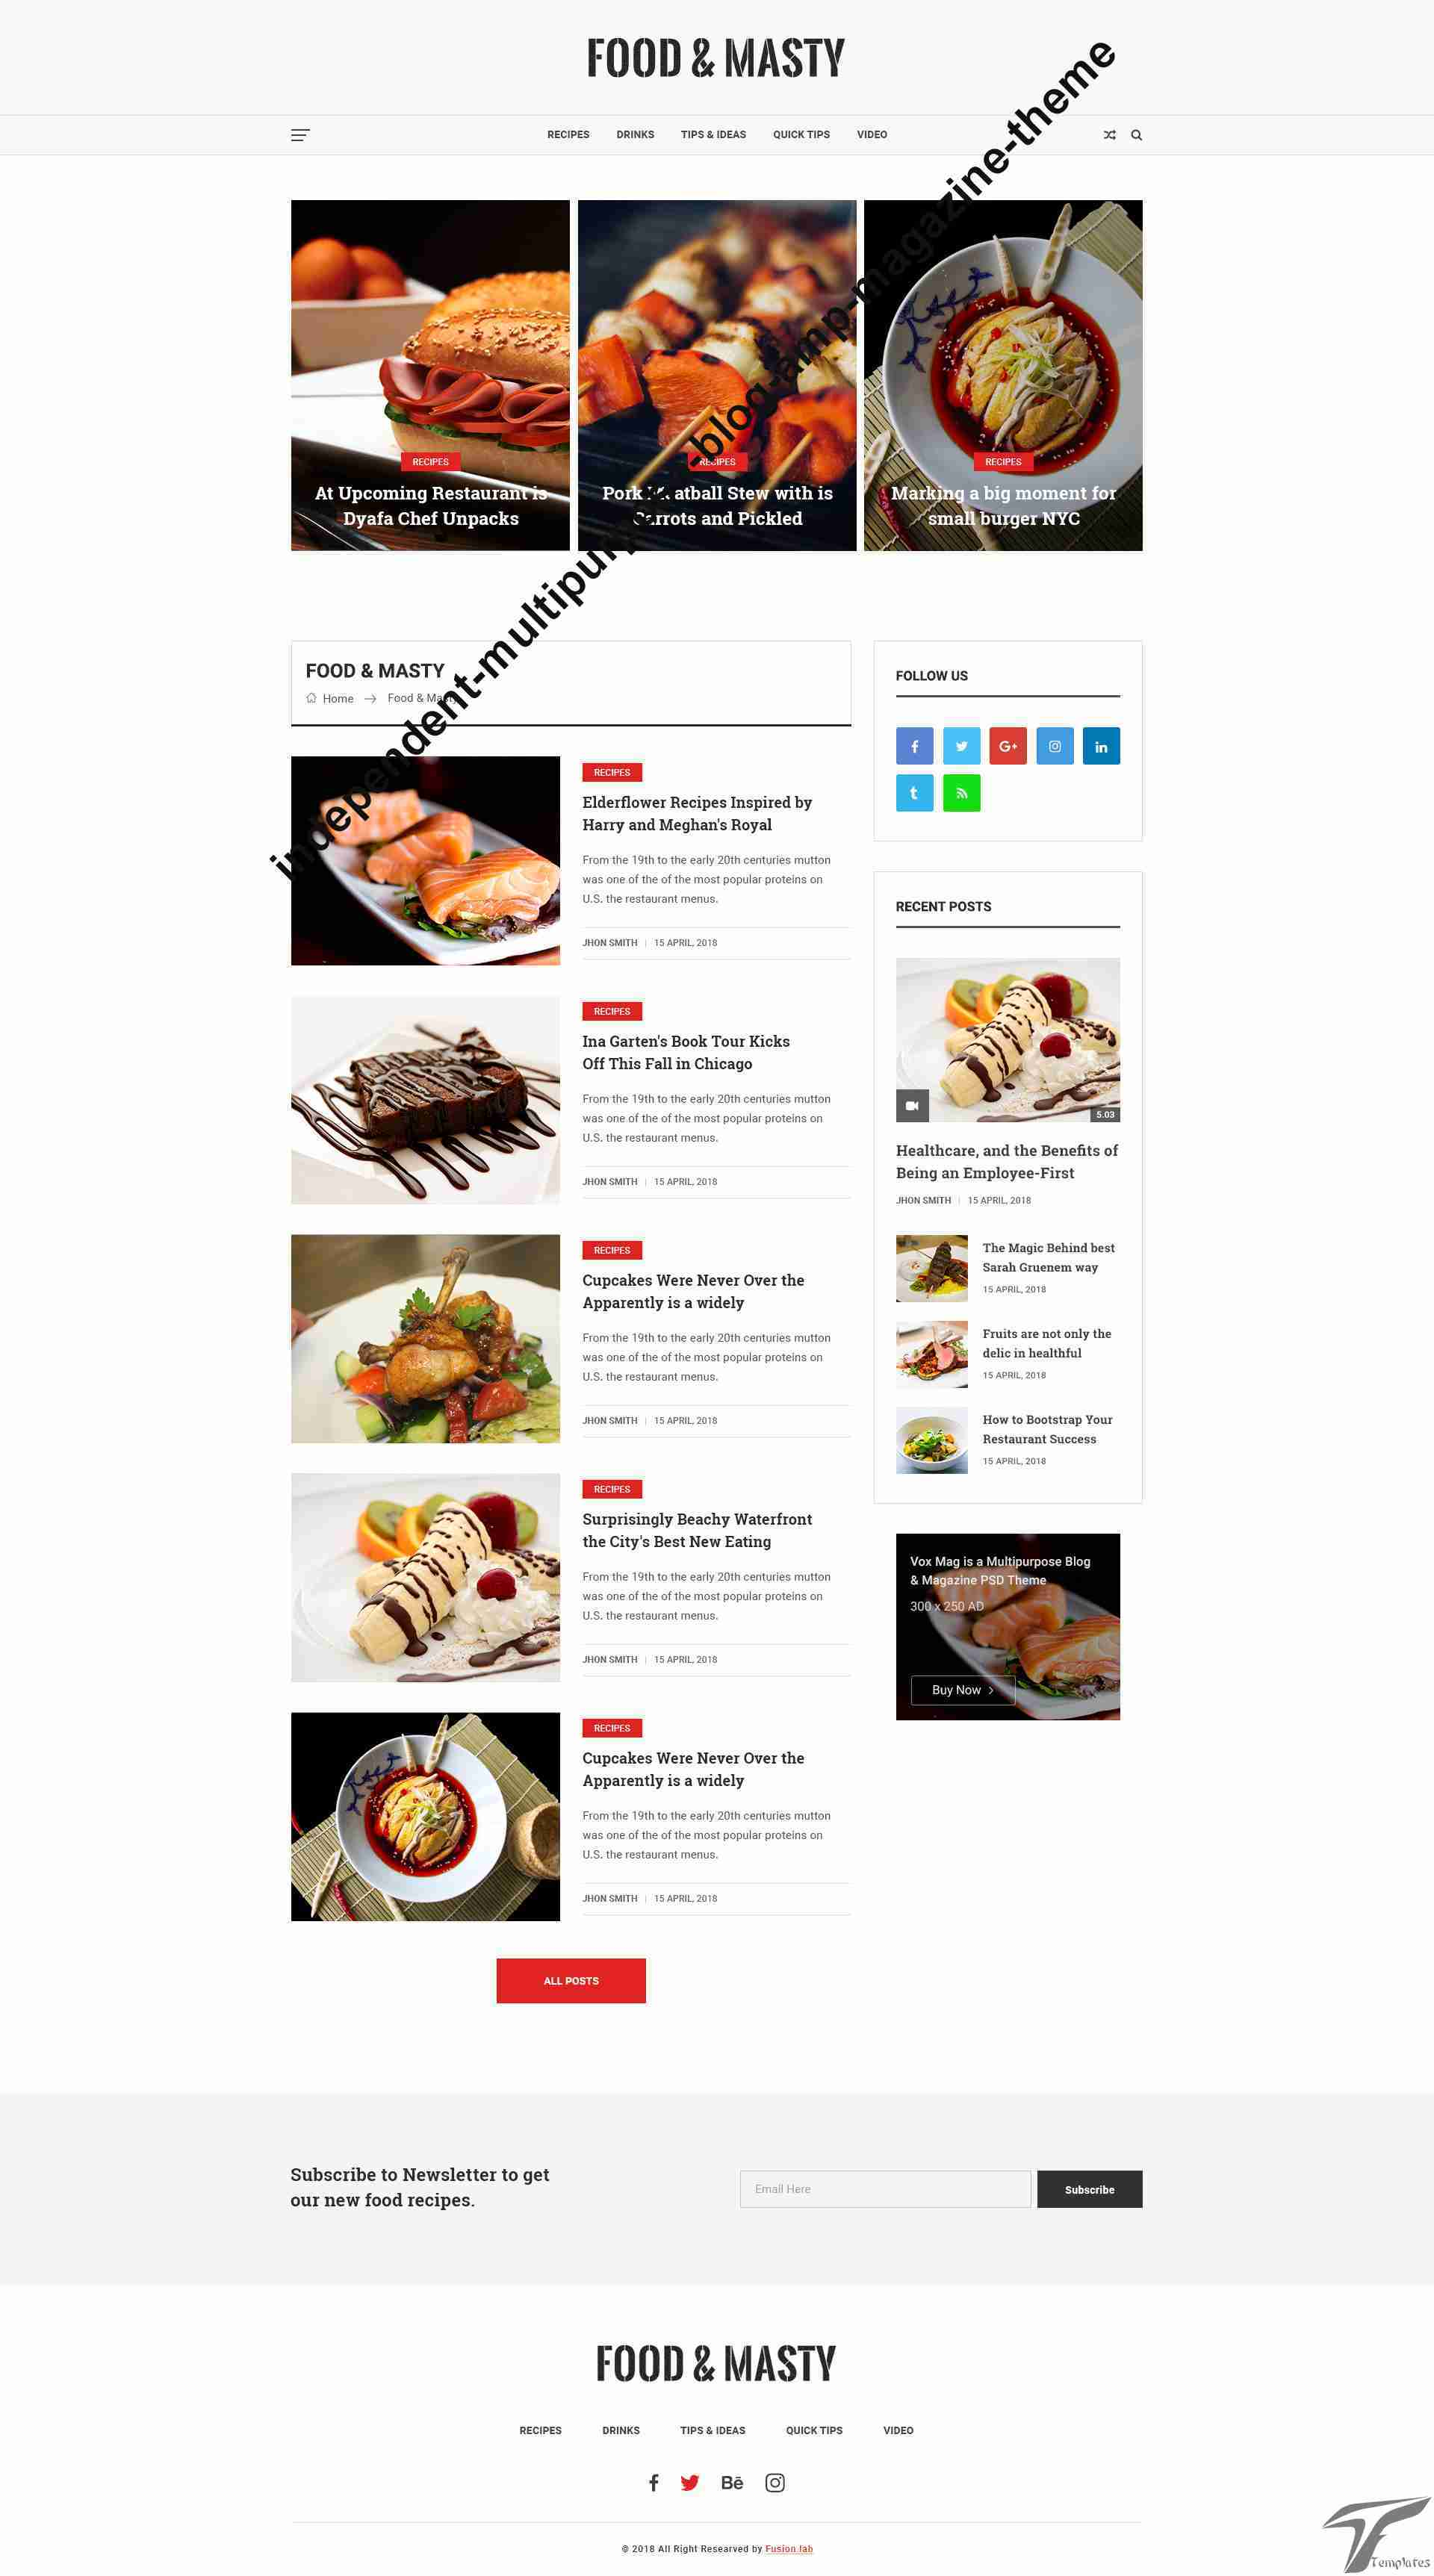 https://images.besthemes.com/images/h1_independent-multipurpose-blog-amp-magazine-theme29-_-249989416/Theme-s20s-Preview/28-Listing-s20s-Blog.jpg